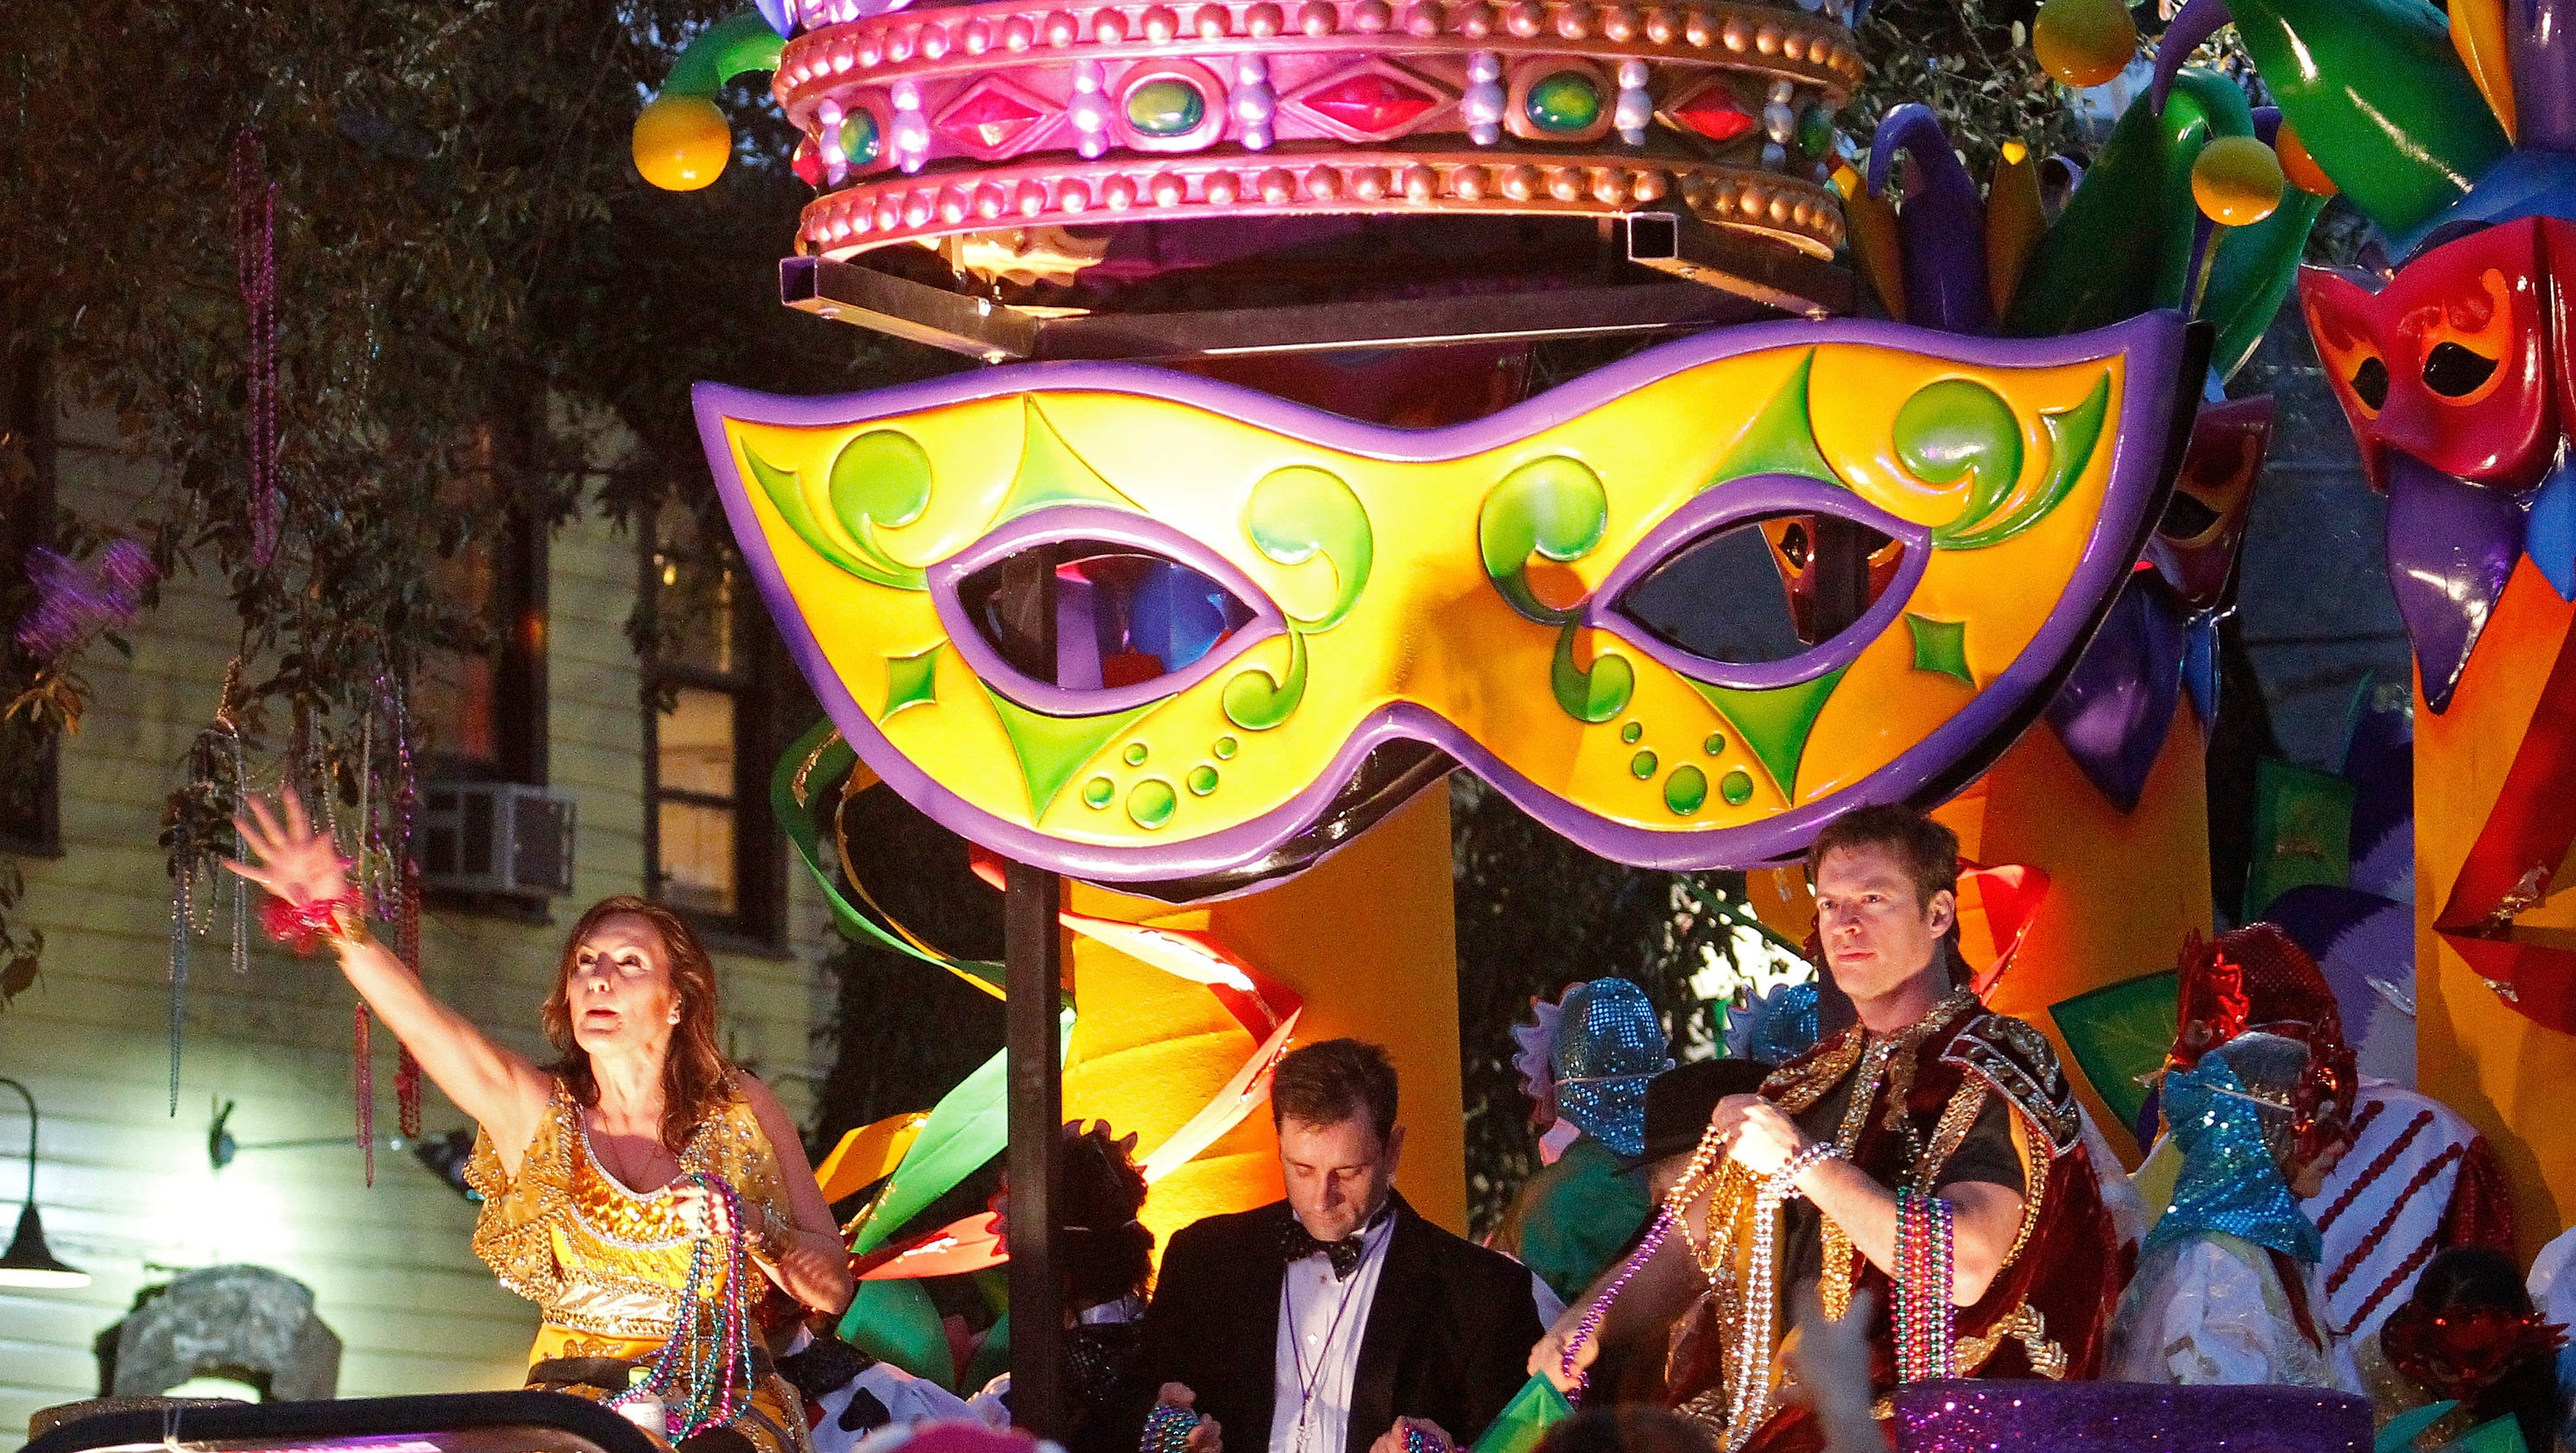 Mardi Gras: Fast facts about Fat Tuesday